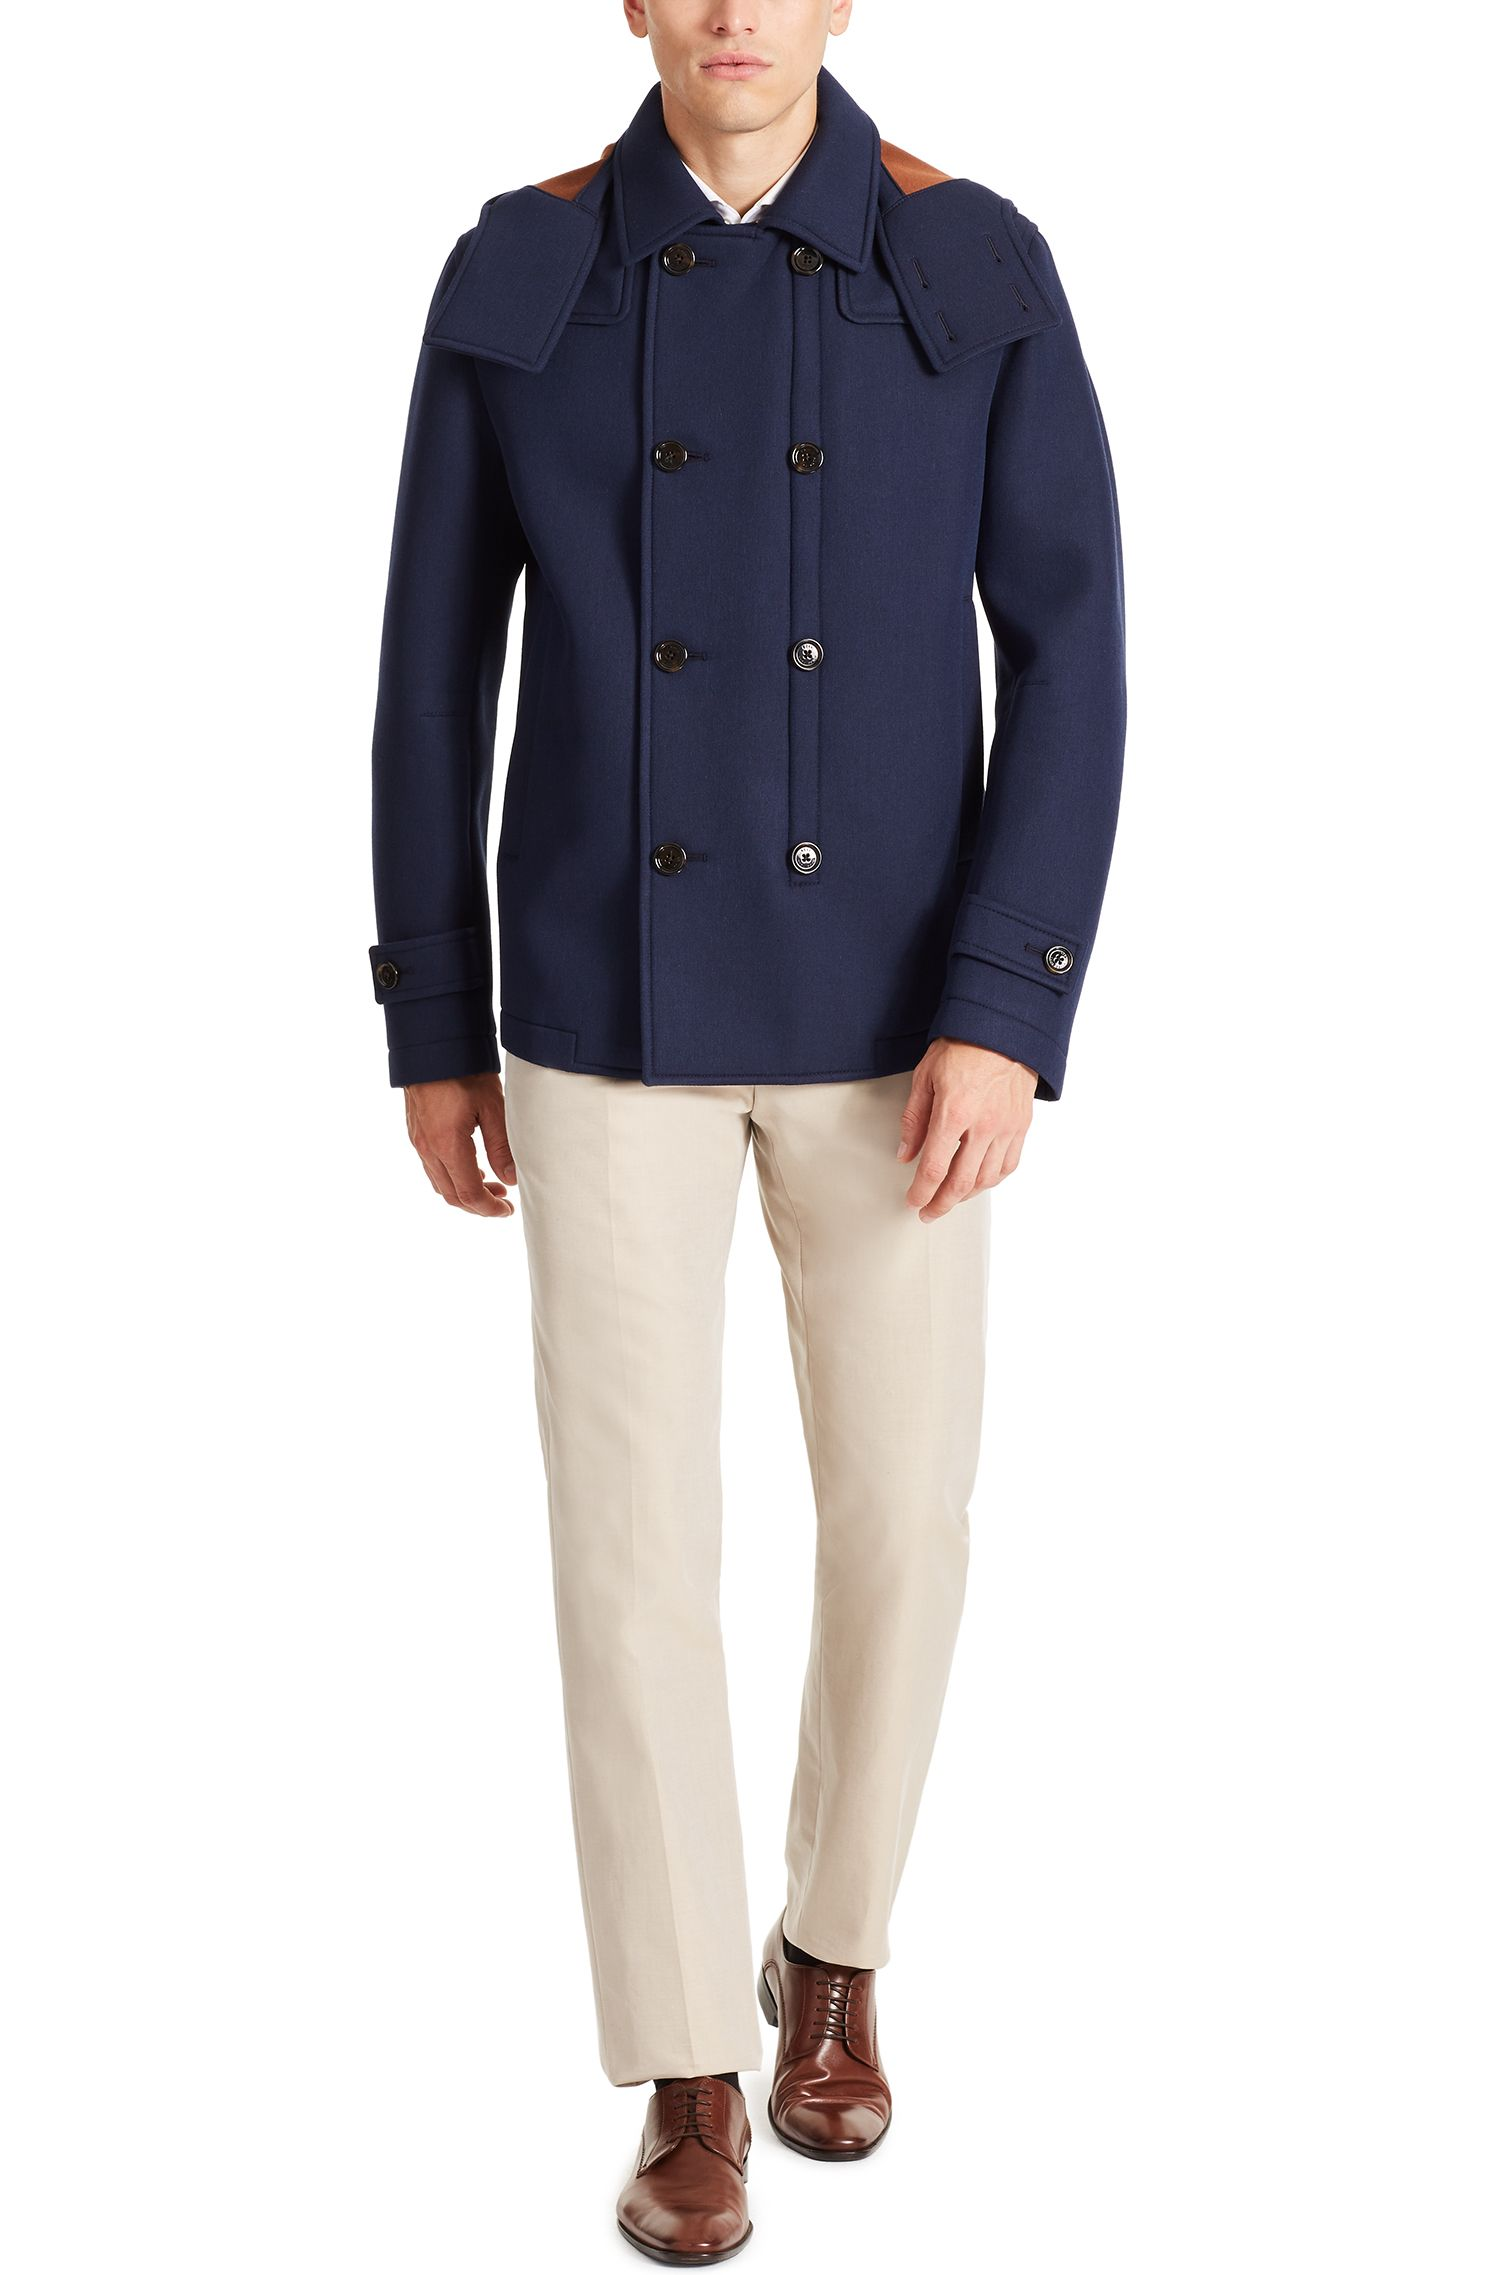 Stretch Virgin Wool Double-Breasted Jacket | Chatham